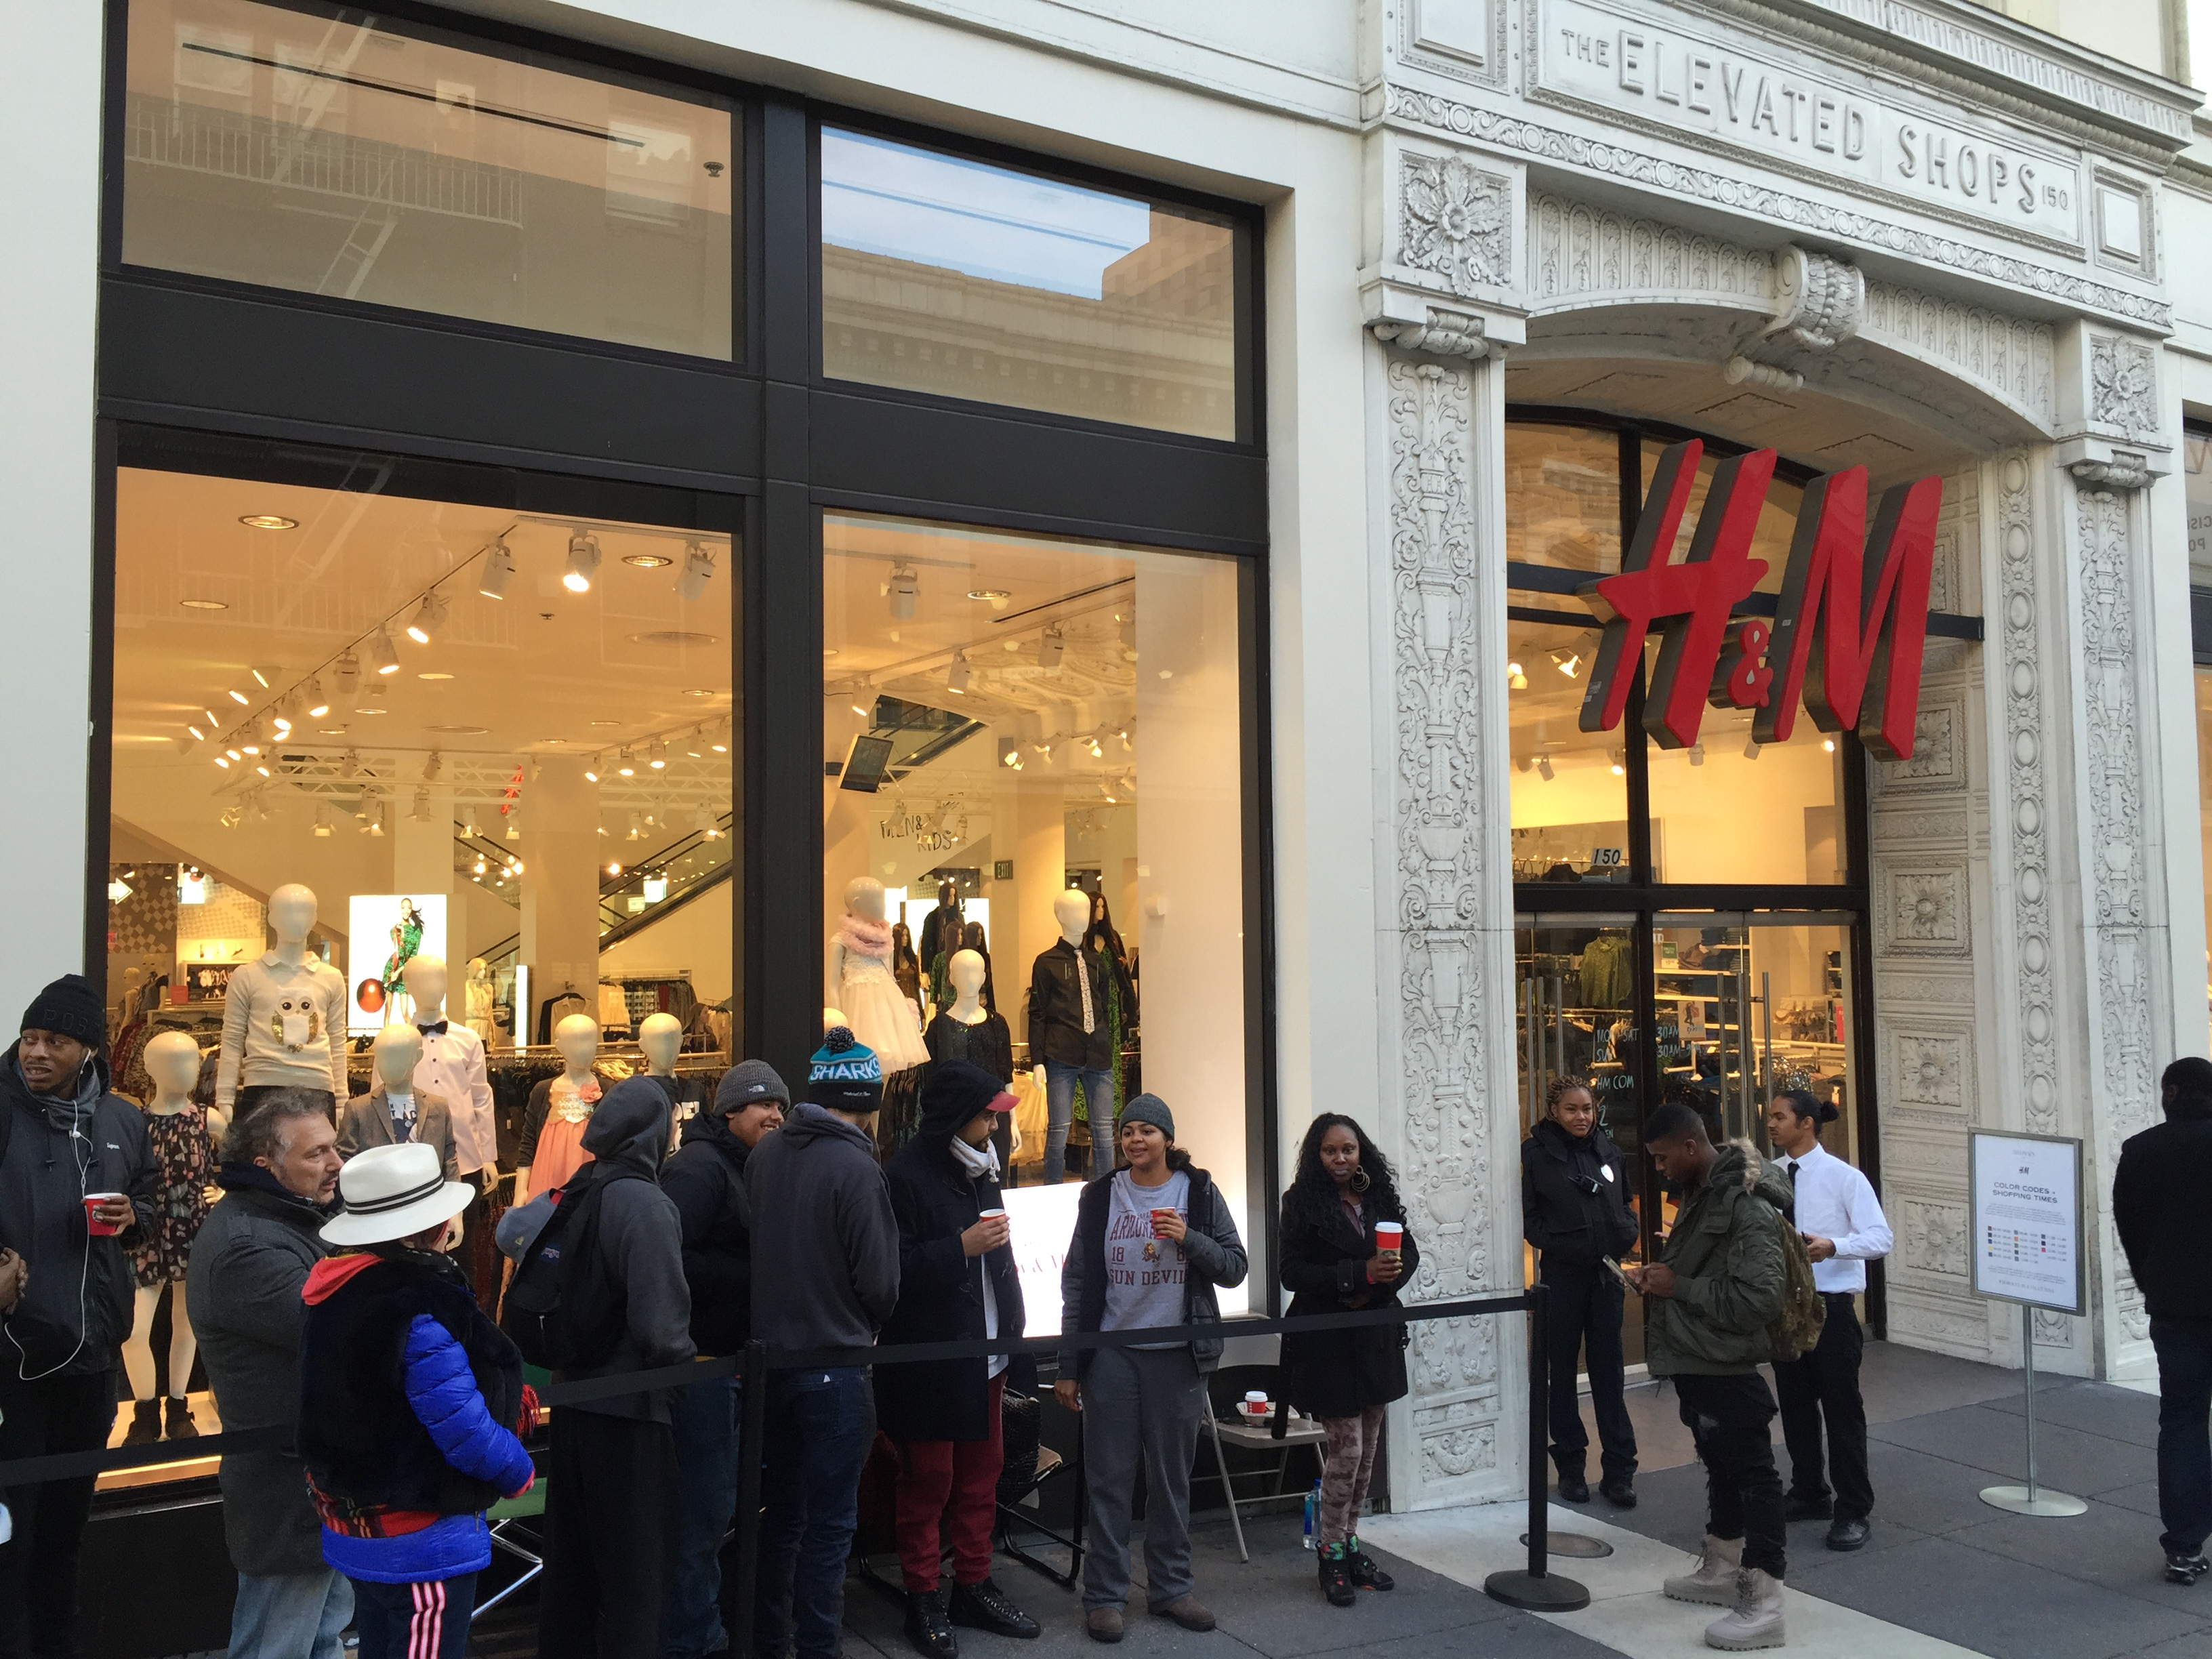 Balmain x H&M: Live Updates from the Launch in San Francisco (We're In Line Right Now)